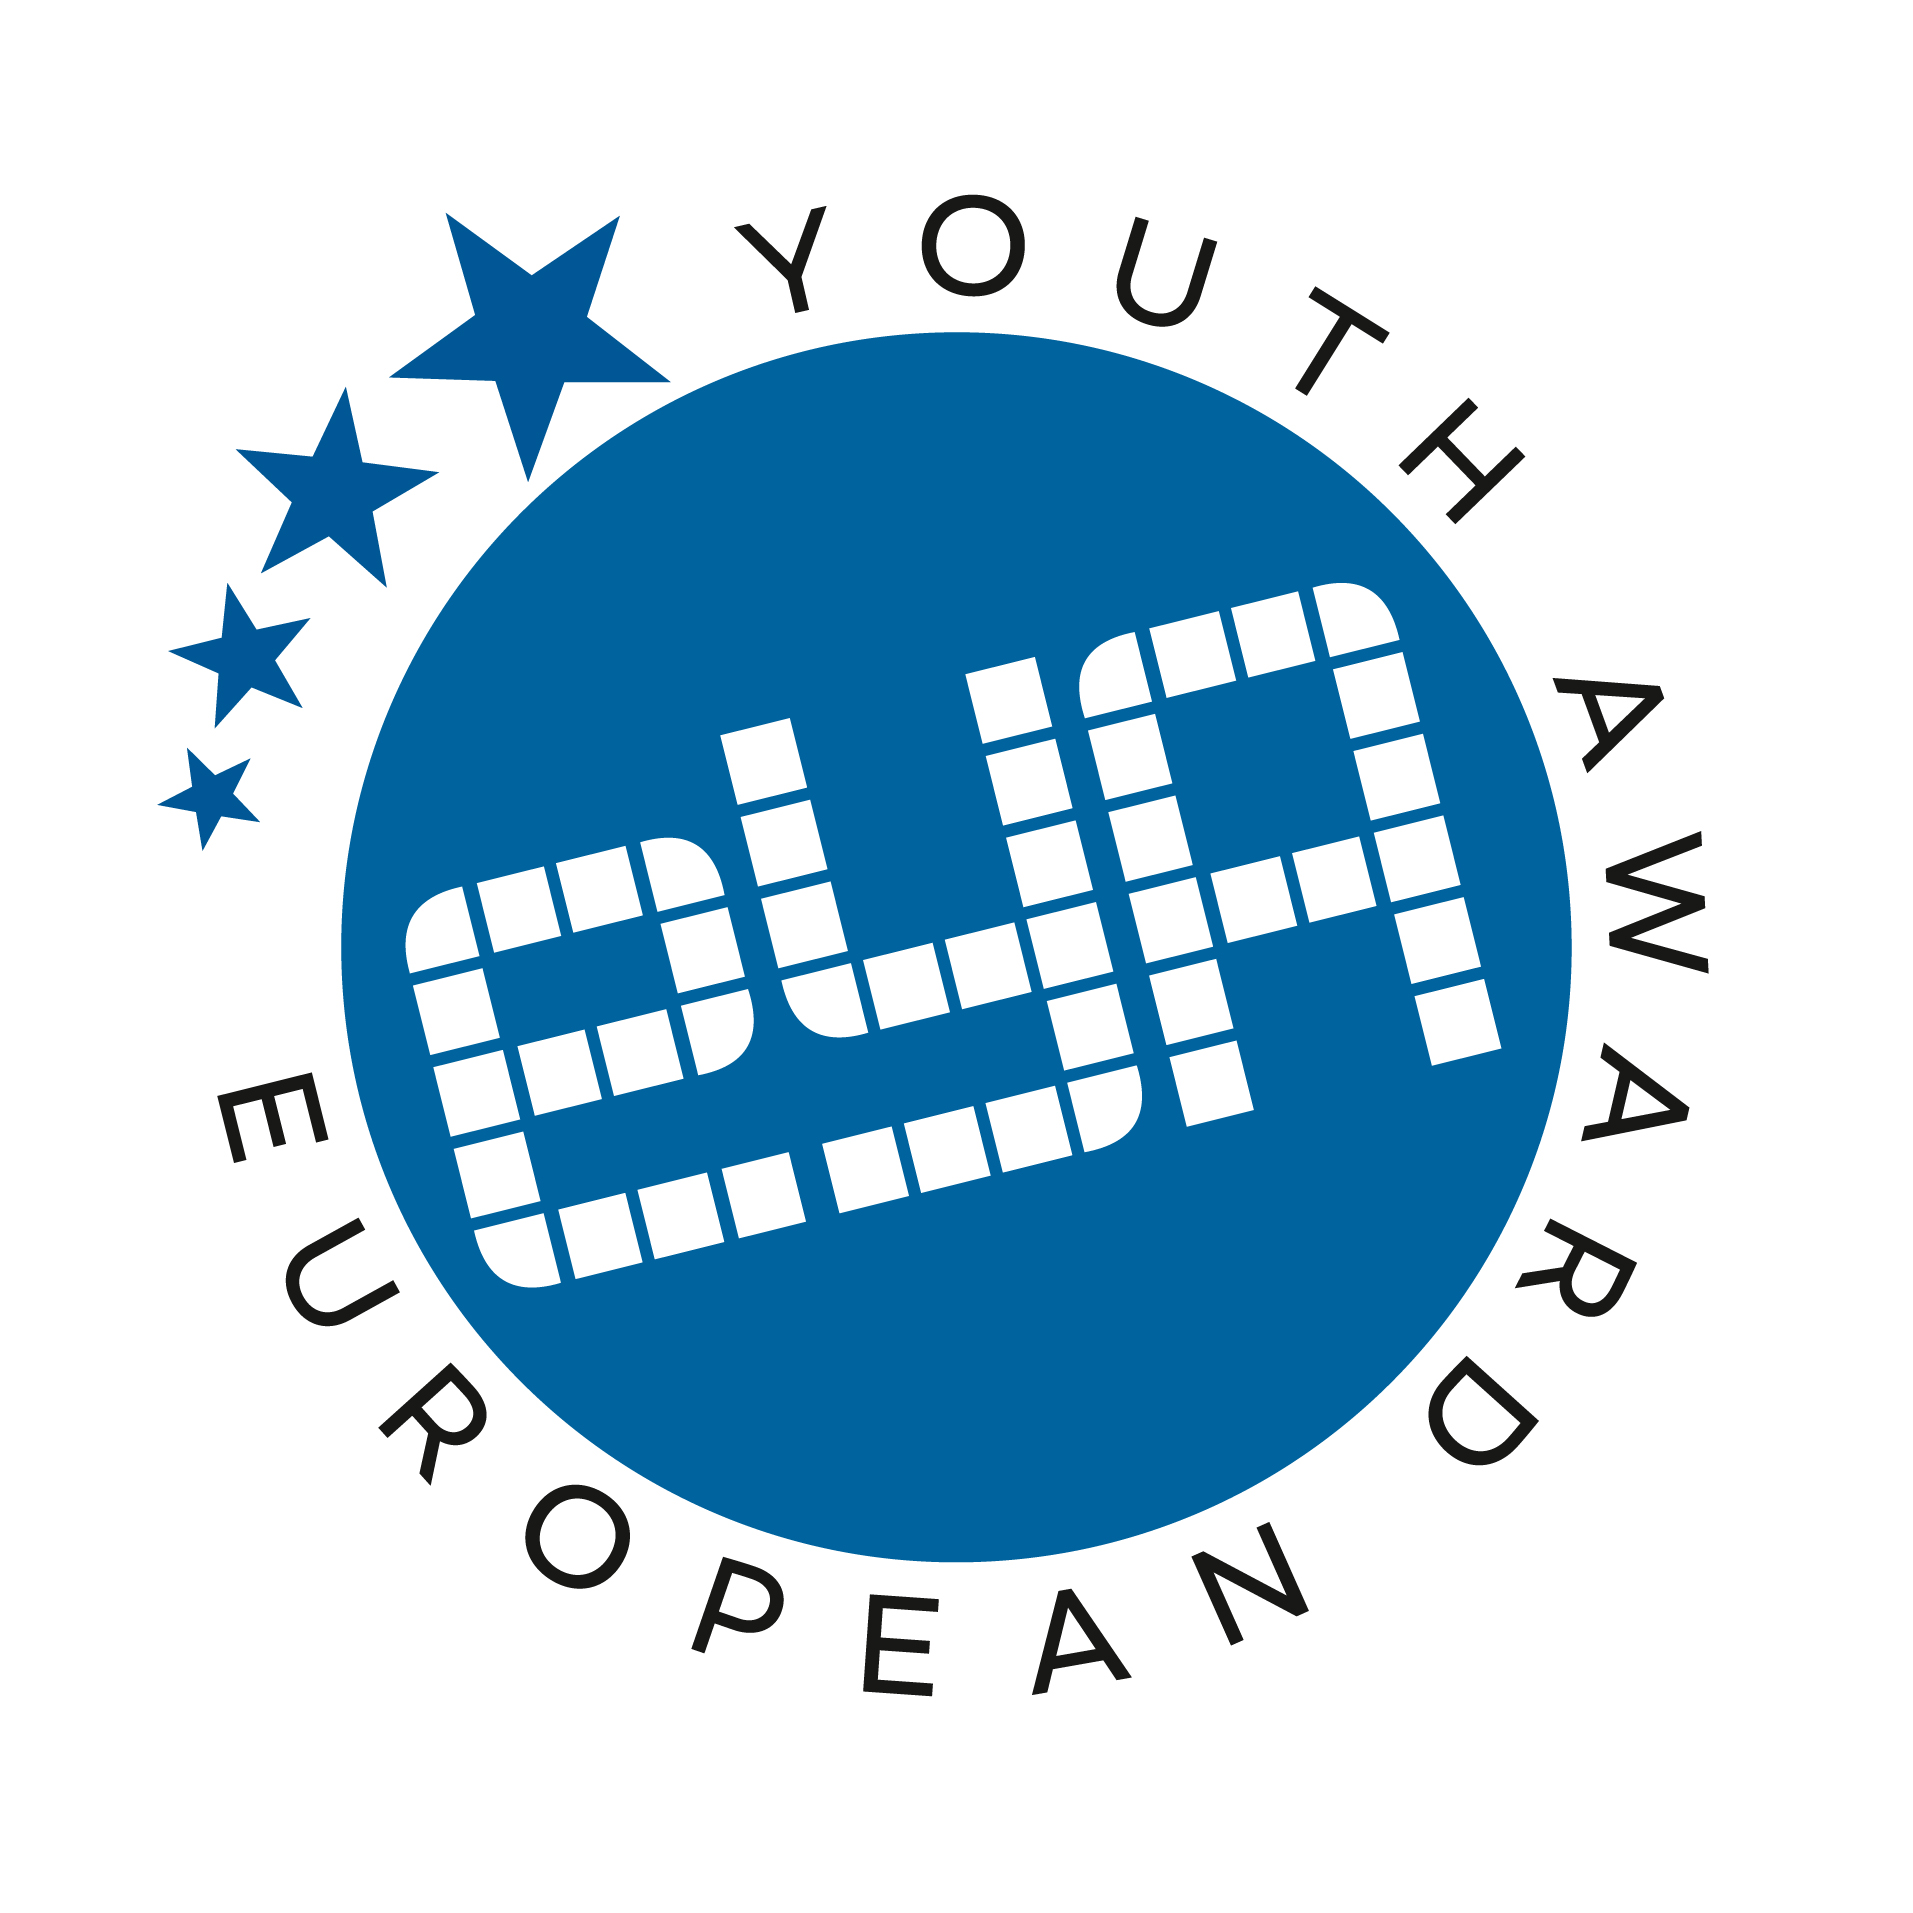 Winning projects for the 2018 European Youth Award - Tech EU News Blogtext in English